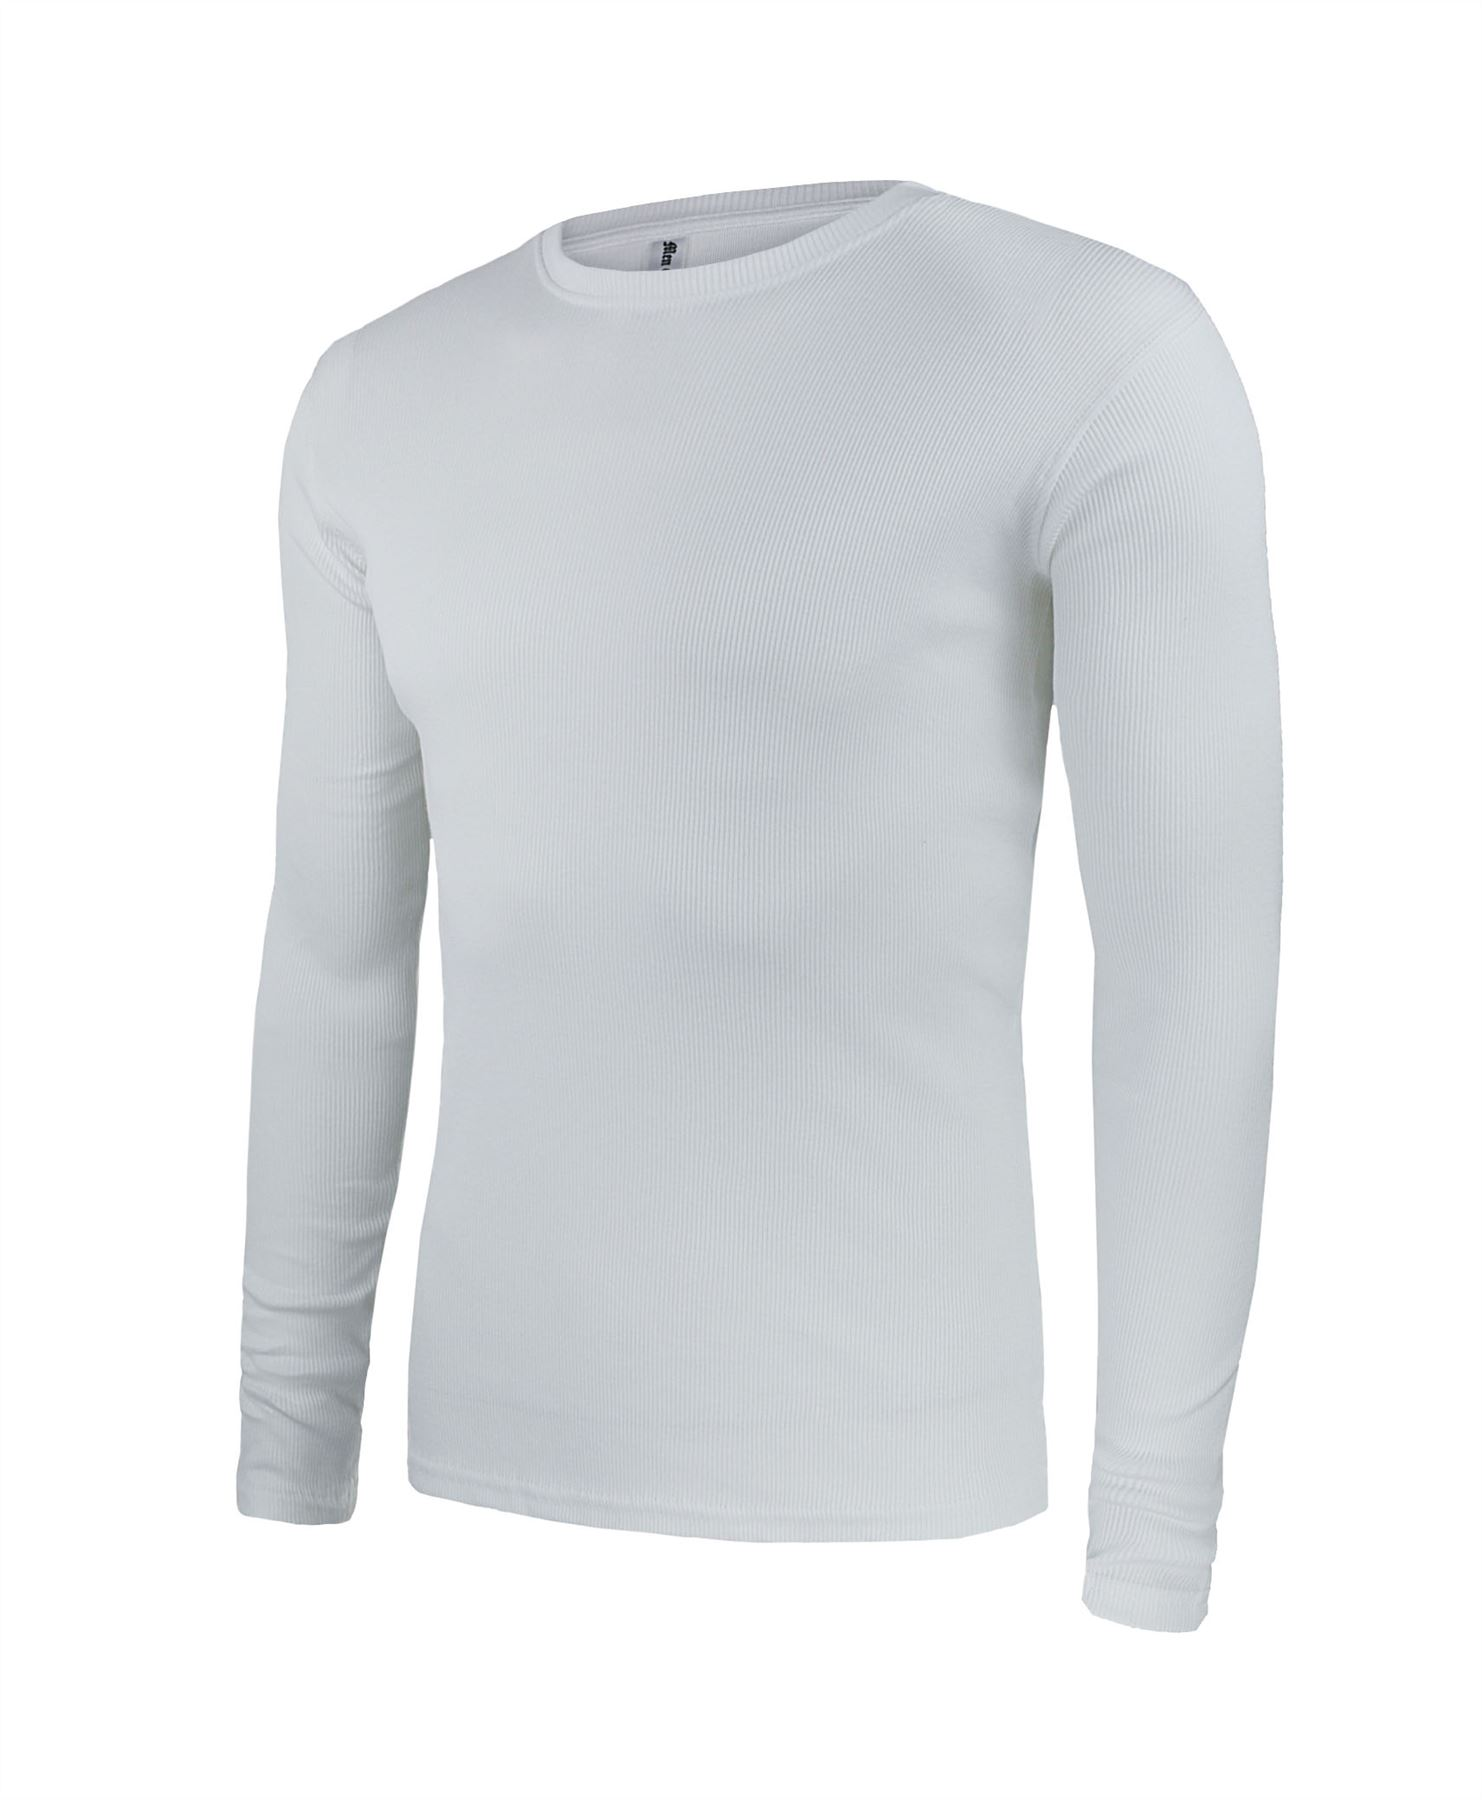 Mens Ribbed Cotton Top Round Neck Long Sleeve Jersey T-Shirt Size ...